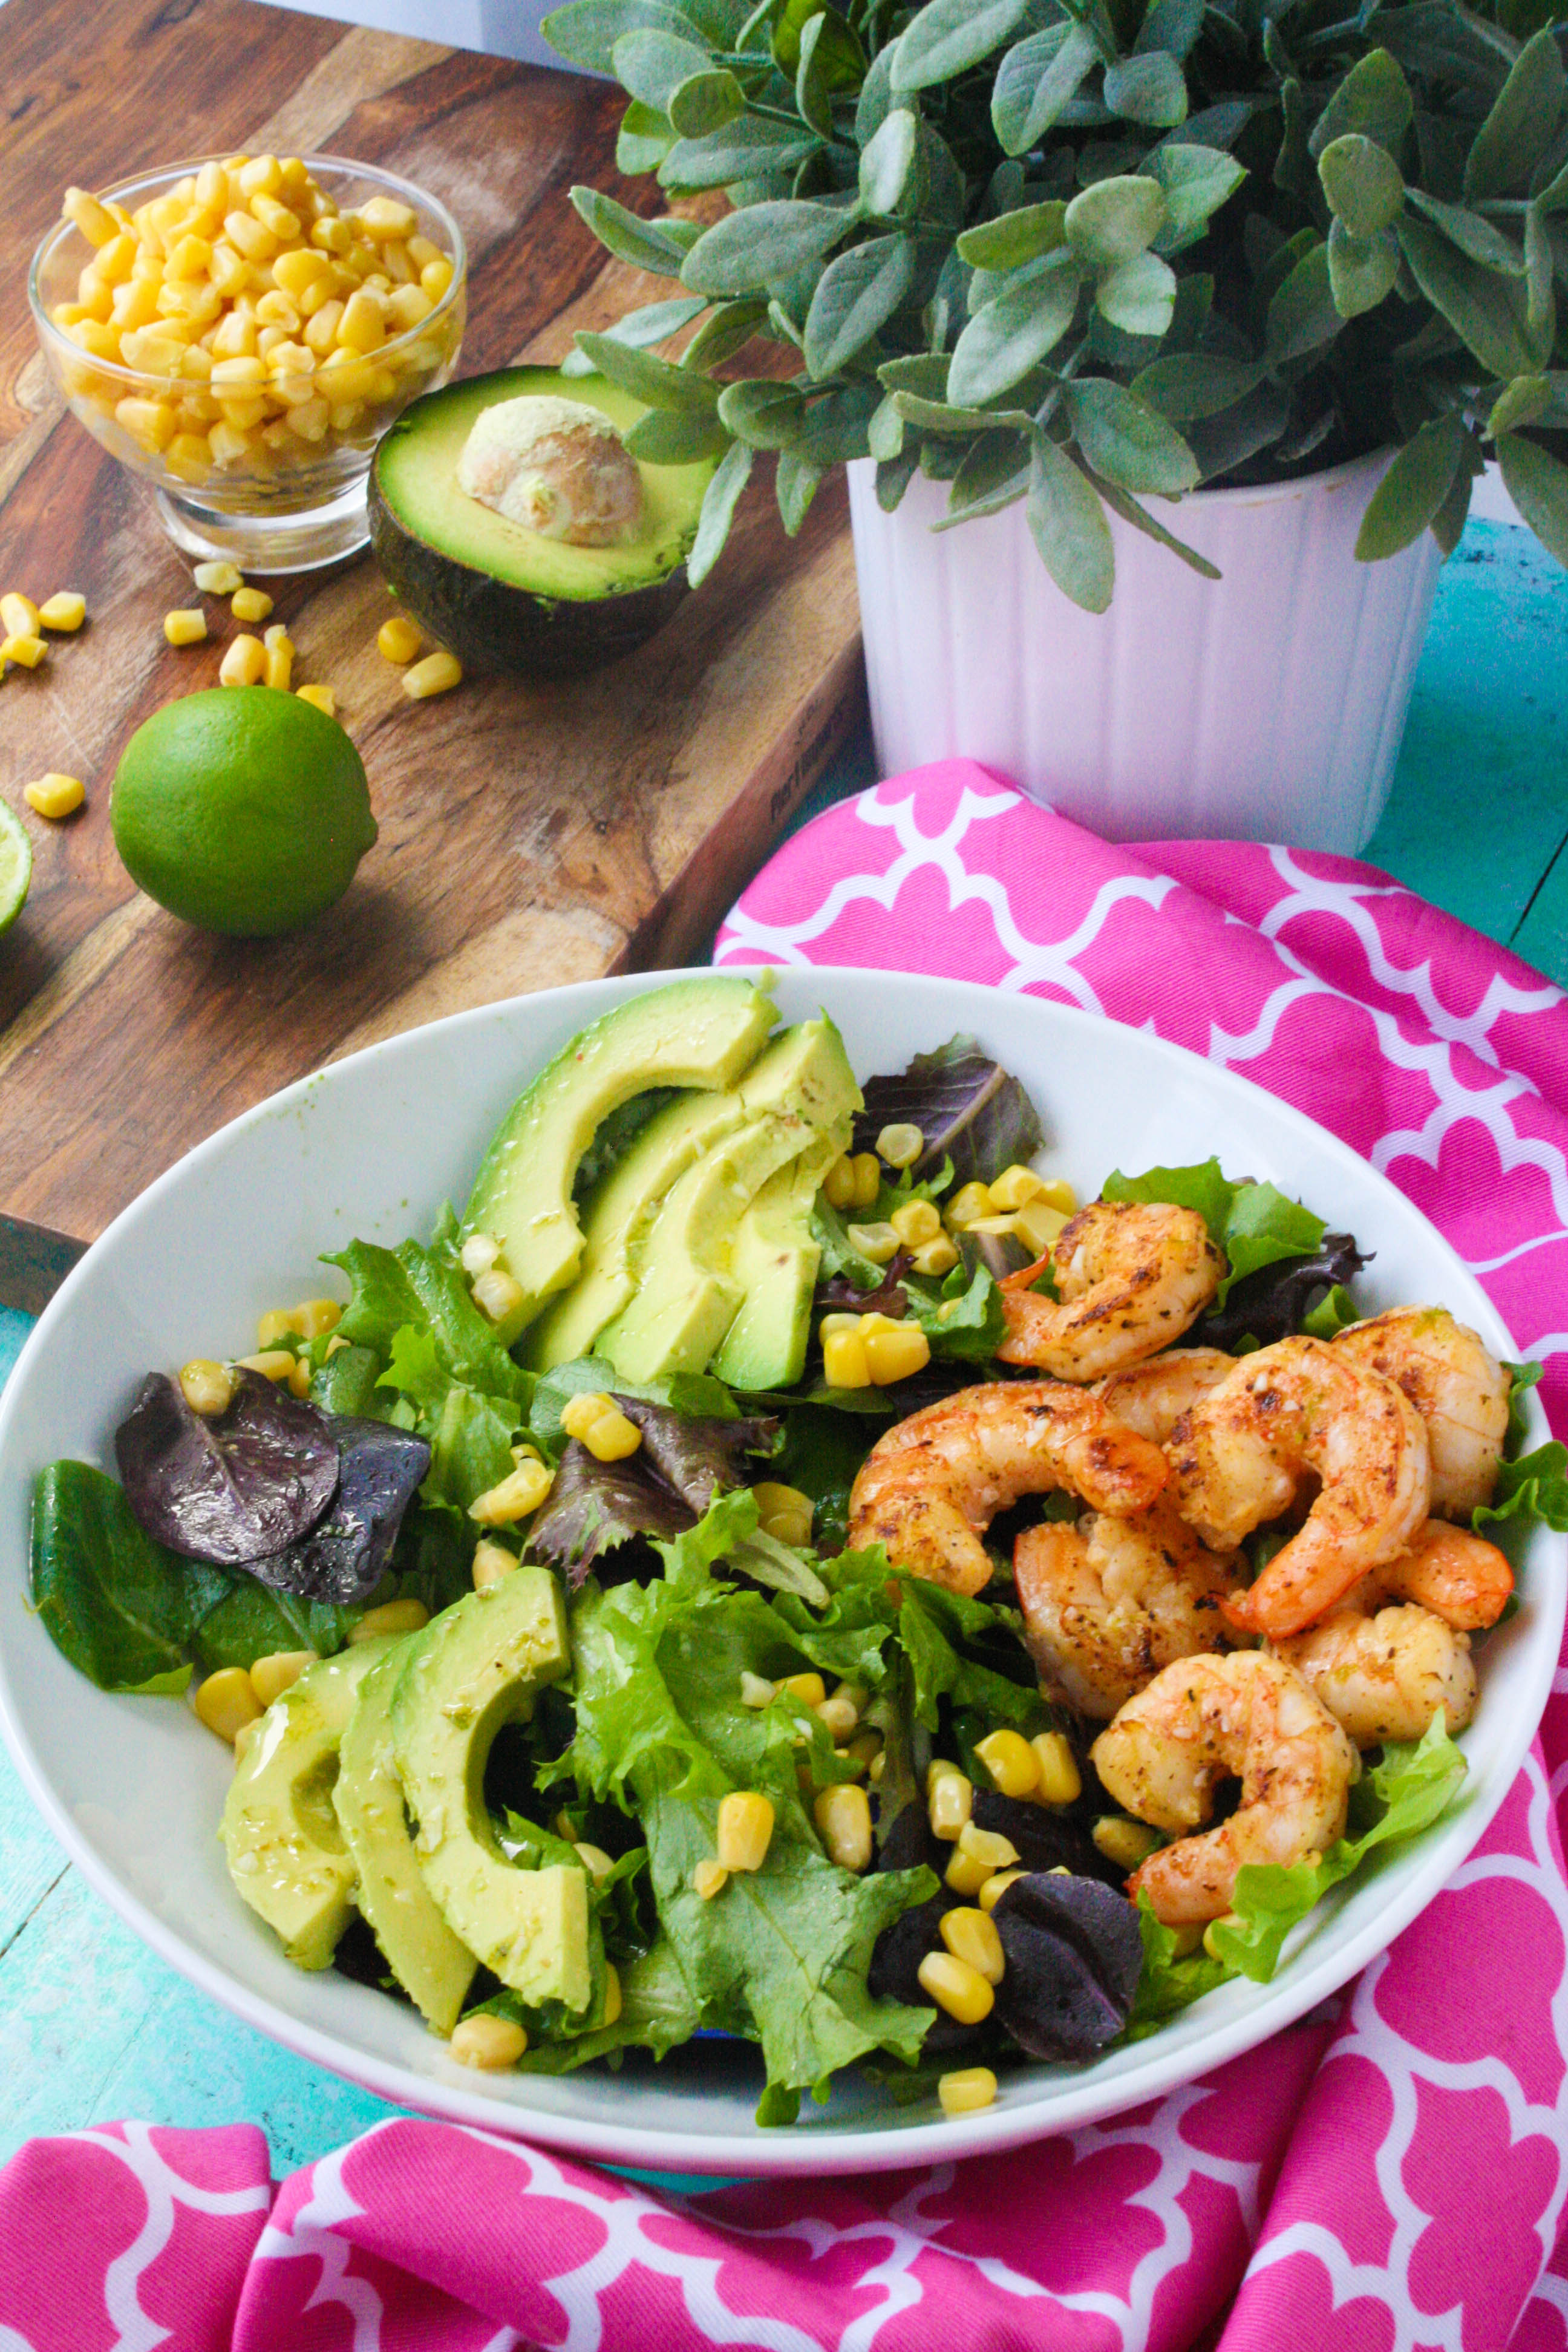 Simple Skillet Shrimp Salad with Lime Vinaigrette is a lovely salad that's easy to put together! Simple Skillet Shrimp Salad with Lime Vinaigrette is filling and flavorful!